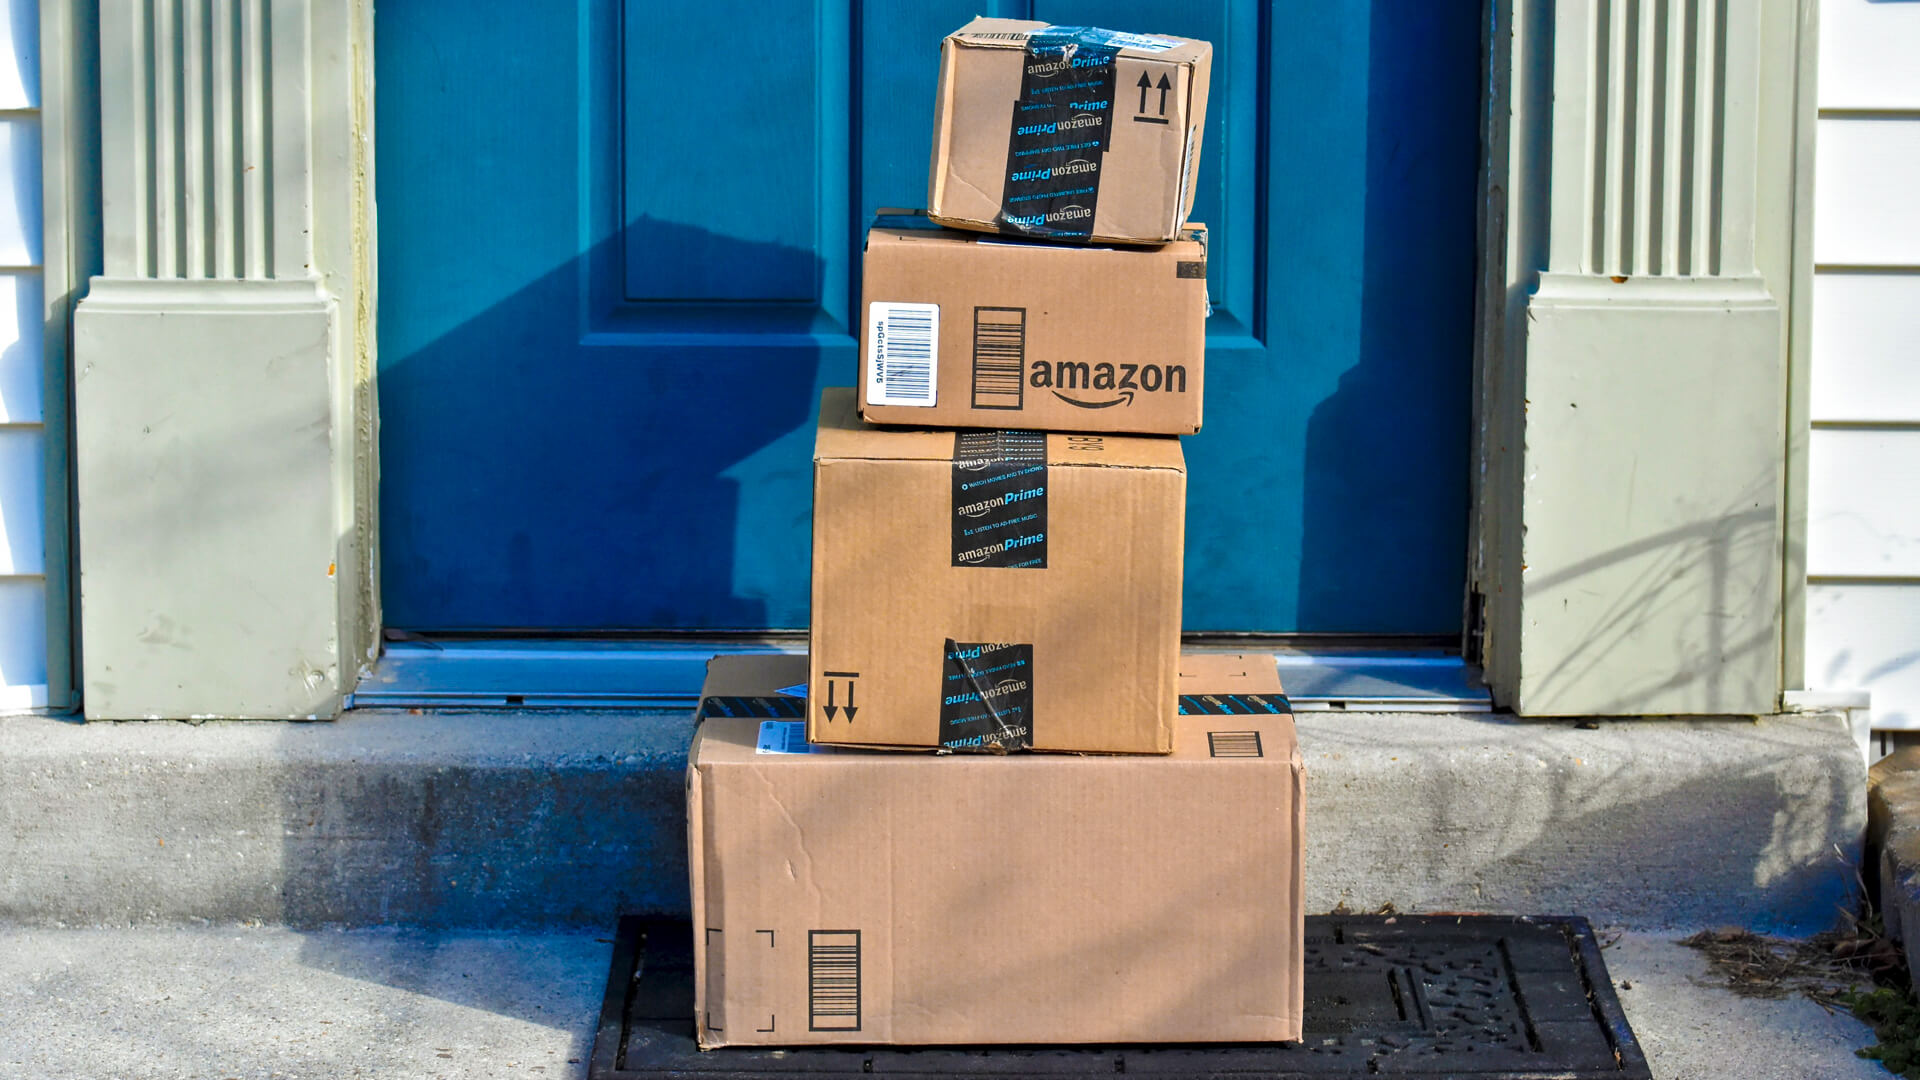 official photos 0cf51 061c1 Amazon Takes Drastic Measure to Stop Customers from Returning Items    GOBankingRates